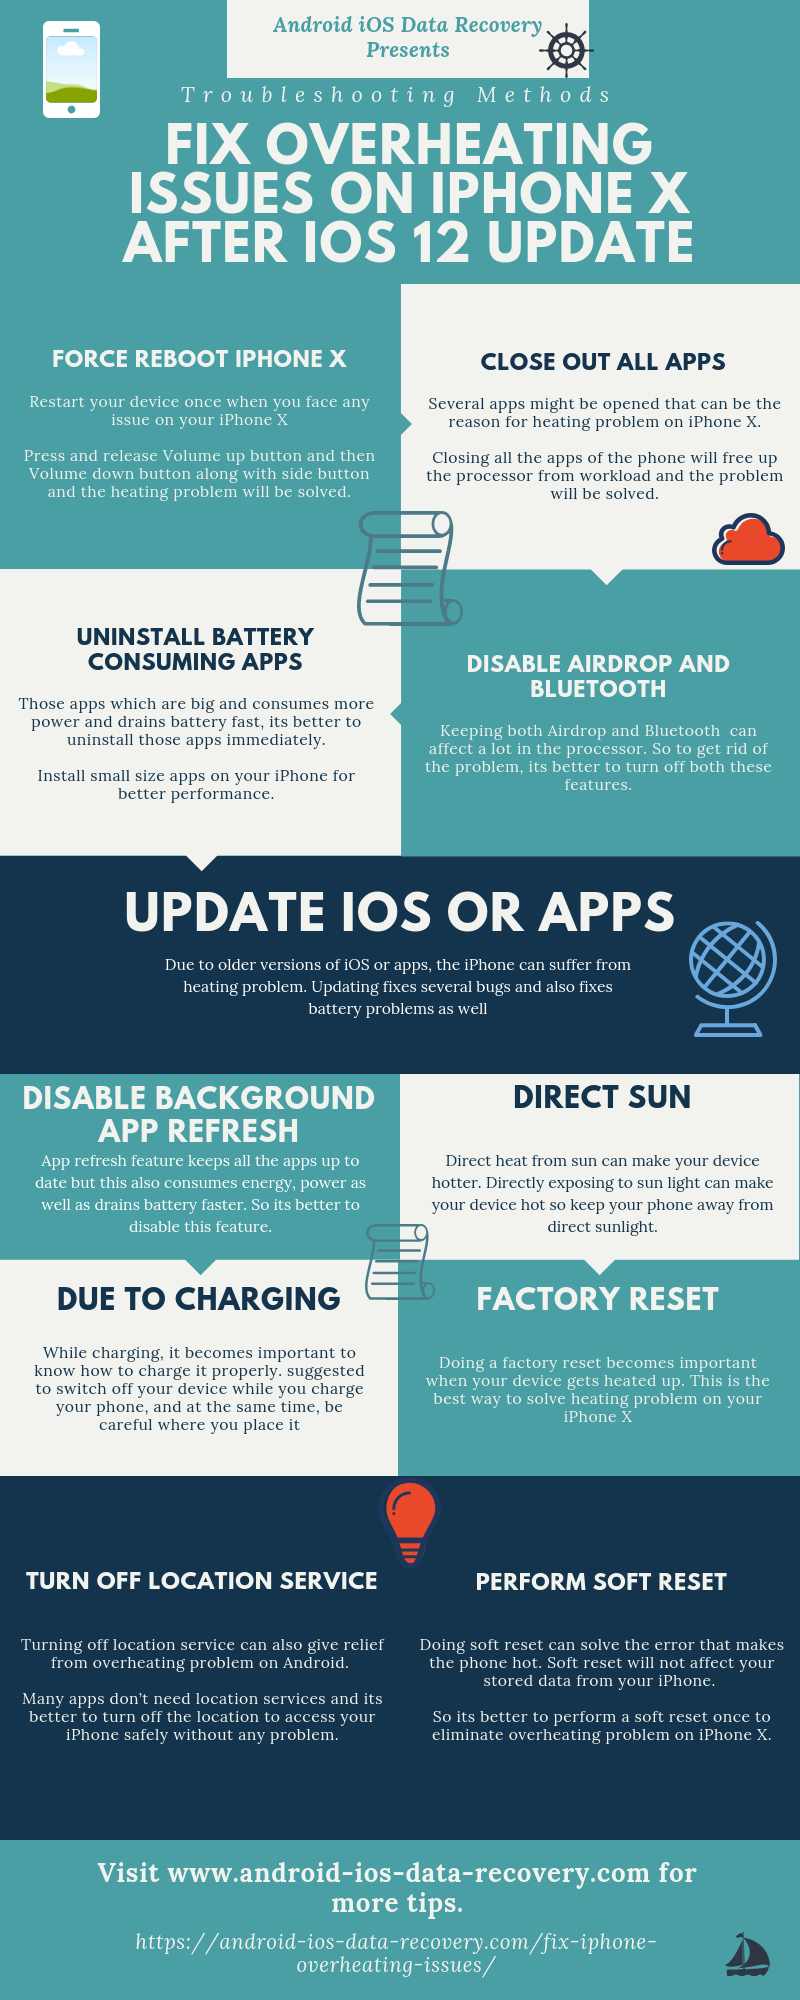 Get The Best Ways To Fix Overheating Problems On Iphone X After Ios 12 Update With The Help Of Infographic Iphone Repair Iphone Phone Repair